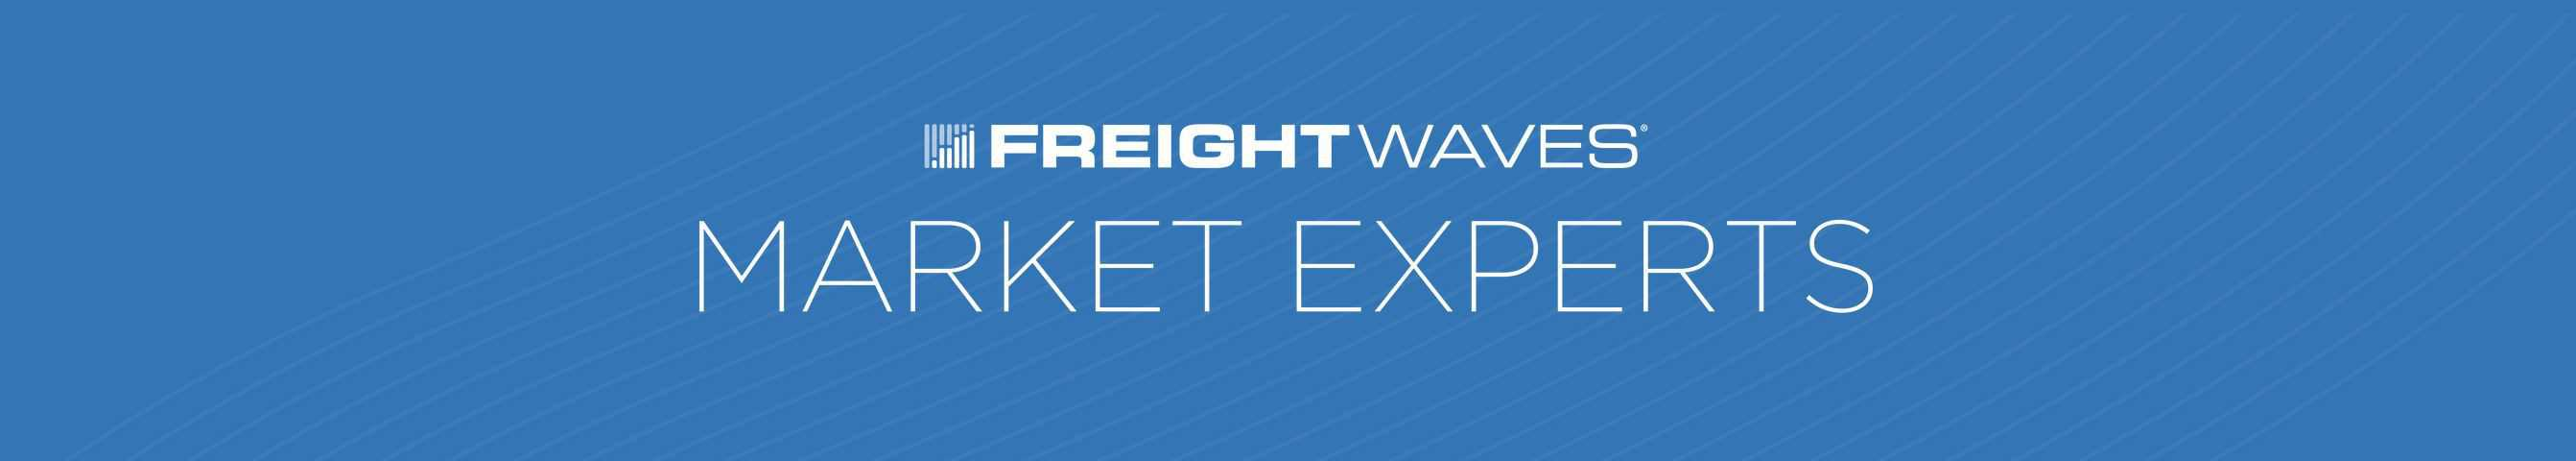 FreightWaves Freight Market Experts